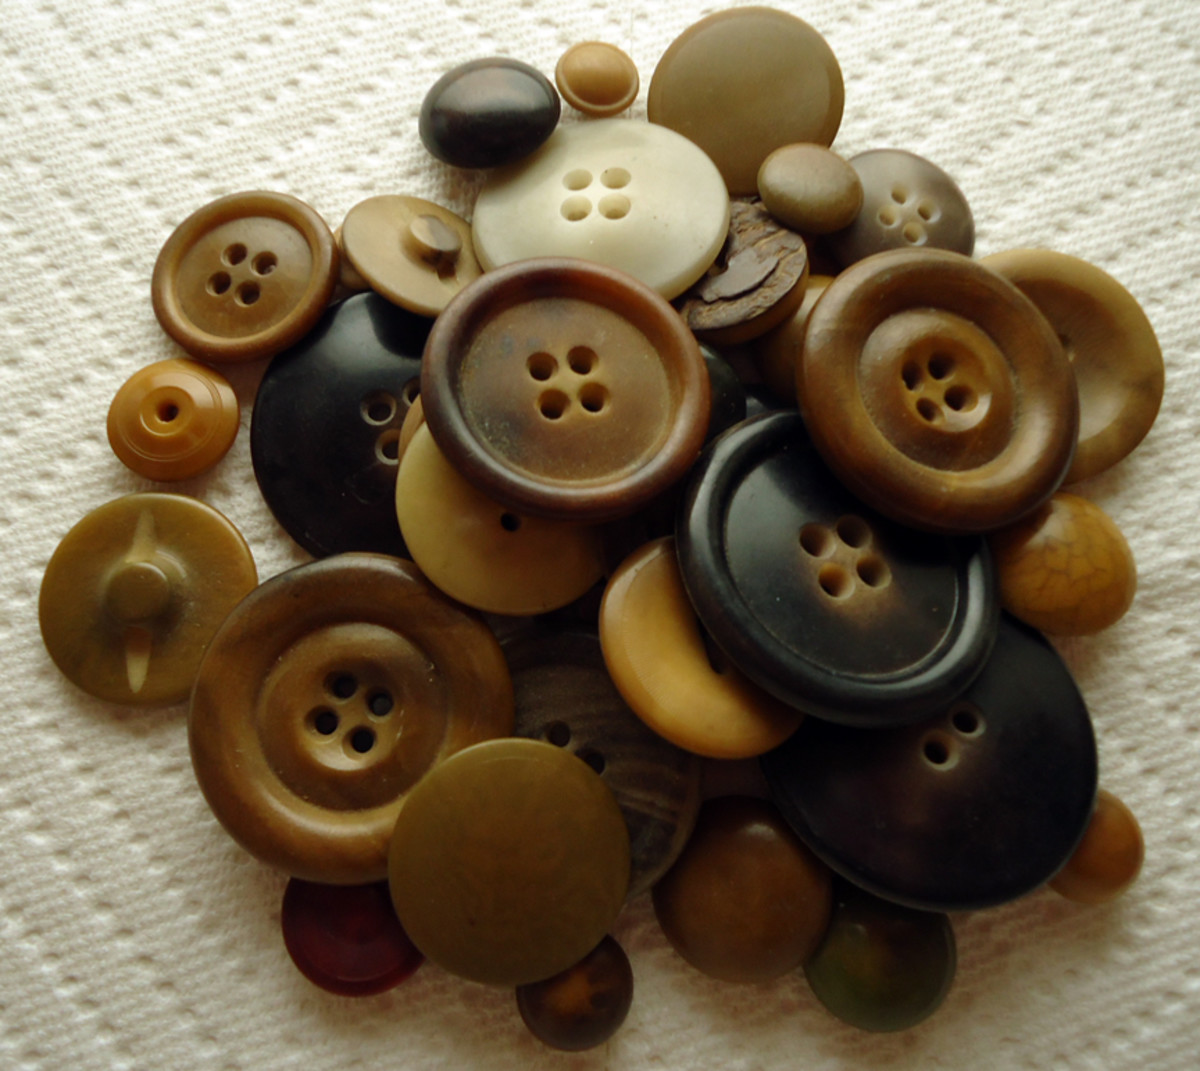 Vintage Button Guide Ways To Identify Antique Buttons